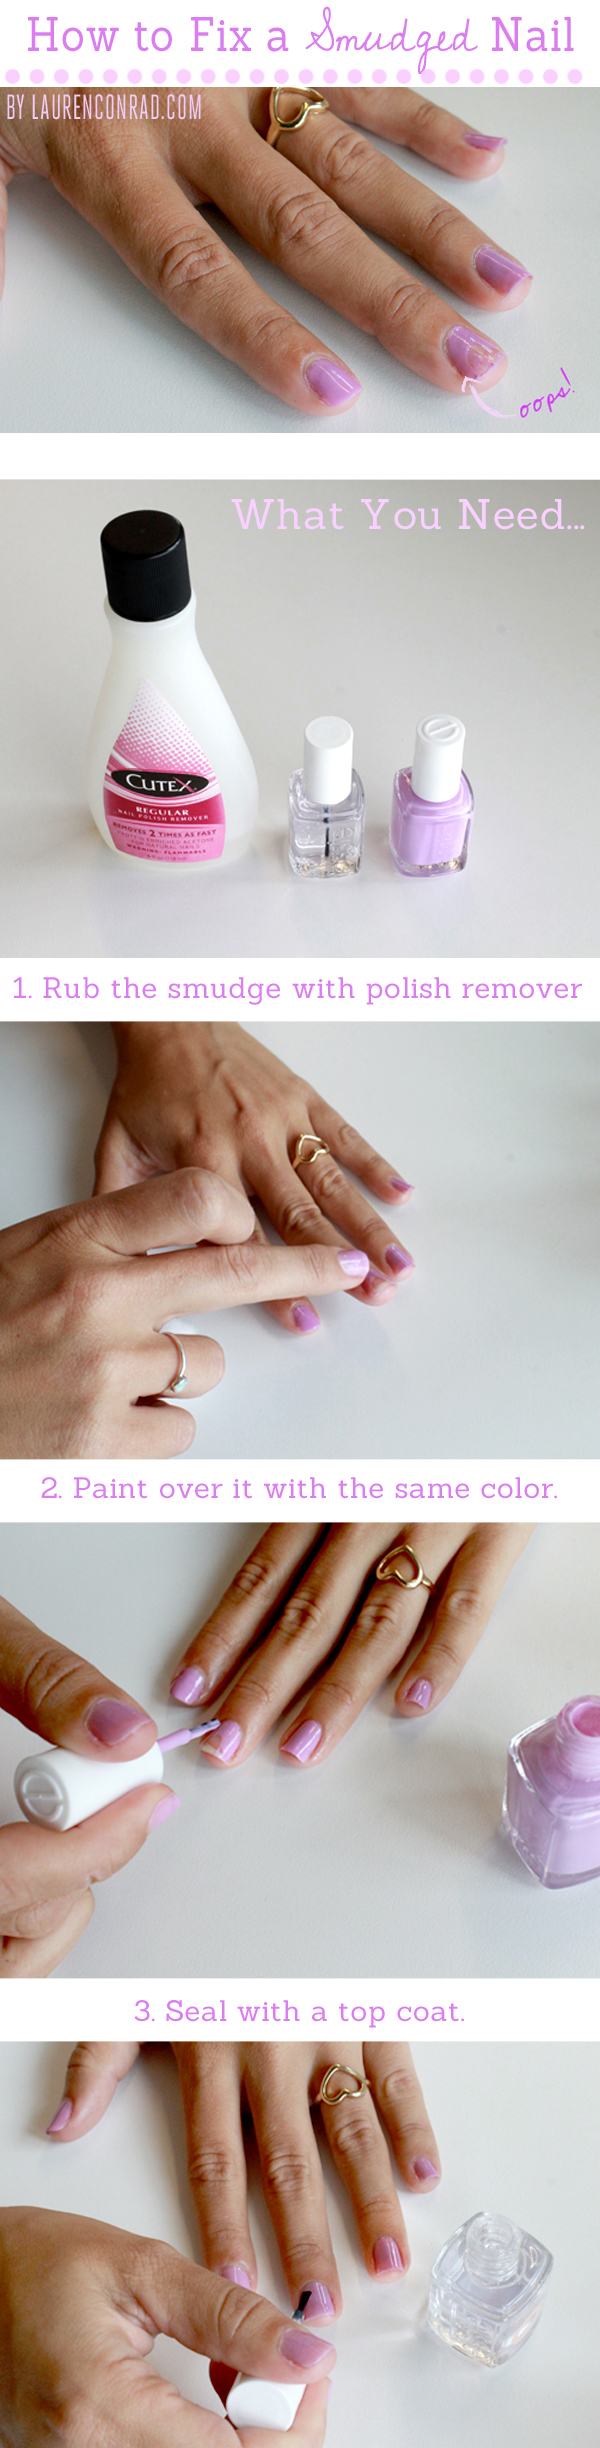 Beauty 911: How to Fix a Smudged Nail - Lauren Conrad